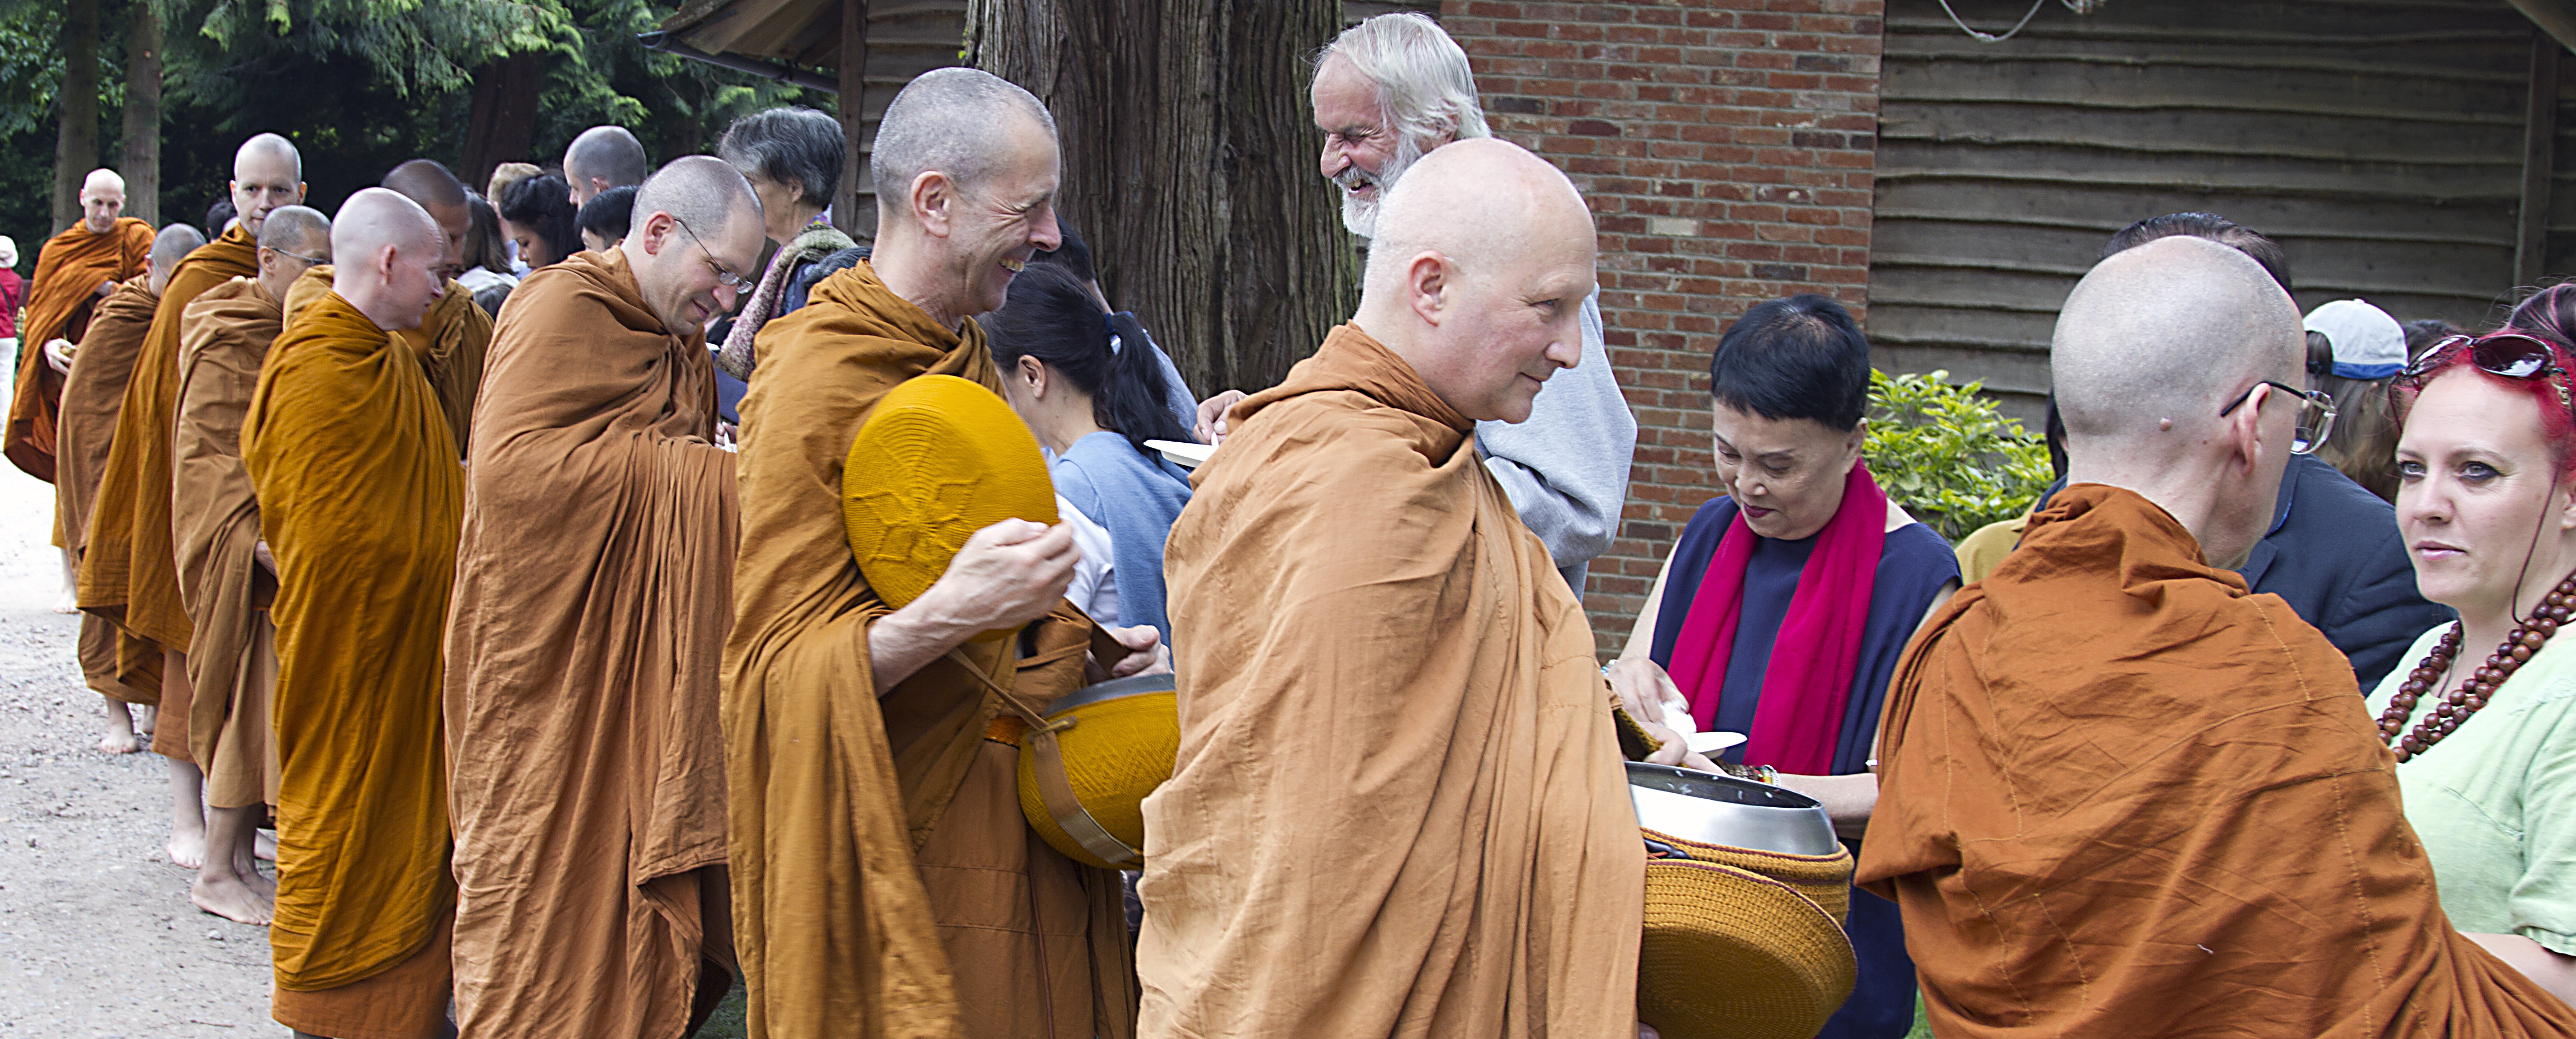 A happy day at Chithurst celebrating the monastery's 40th anniversary.